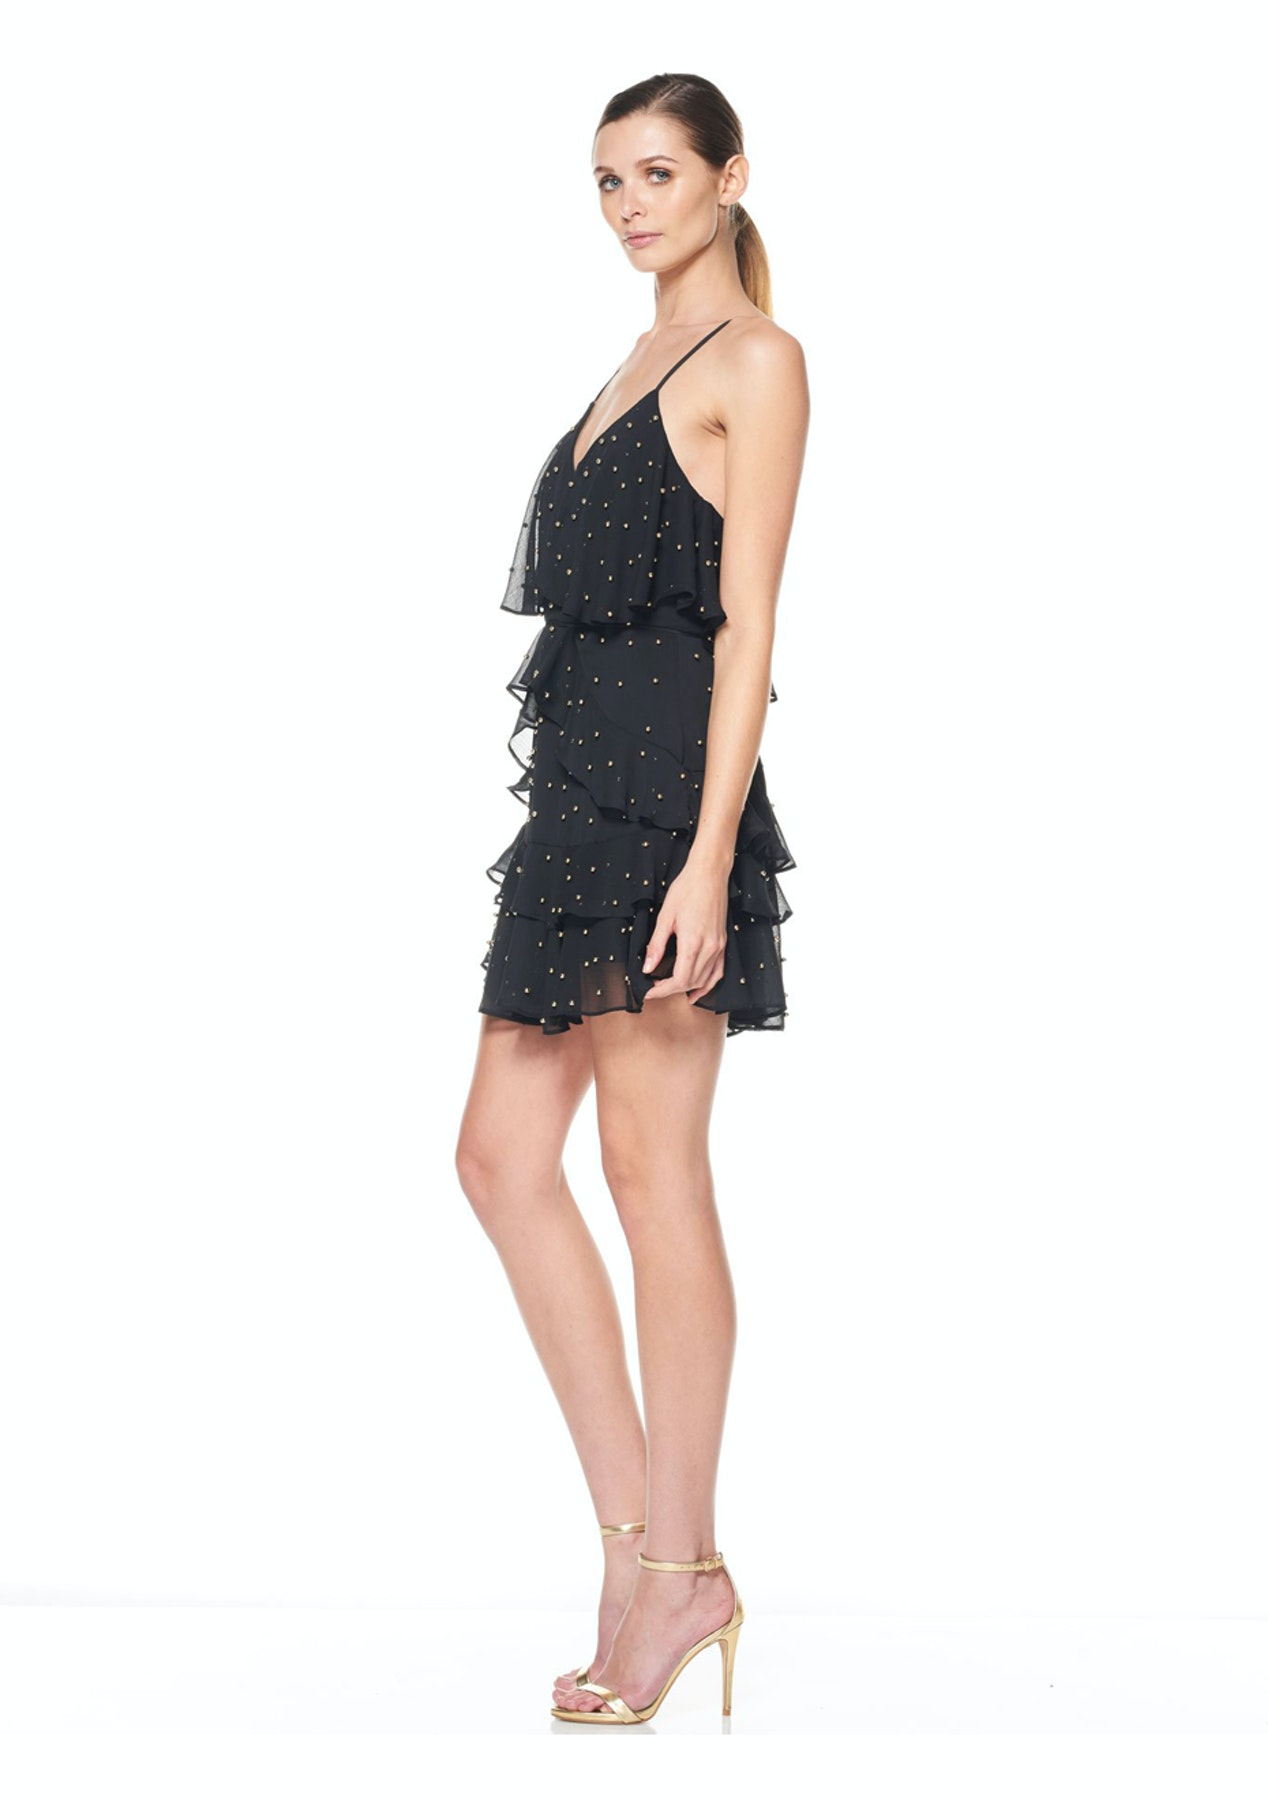 La Maison Talulah - Queen Of The Night Mini Dress - Black With Gold Ball  Sequin - New Stevie May ad536d8fa